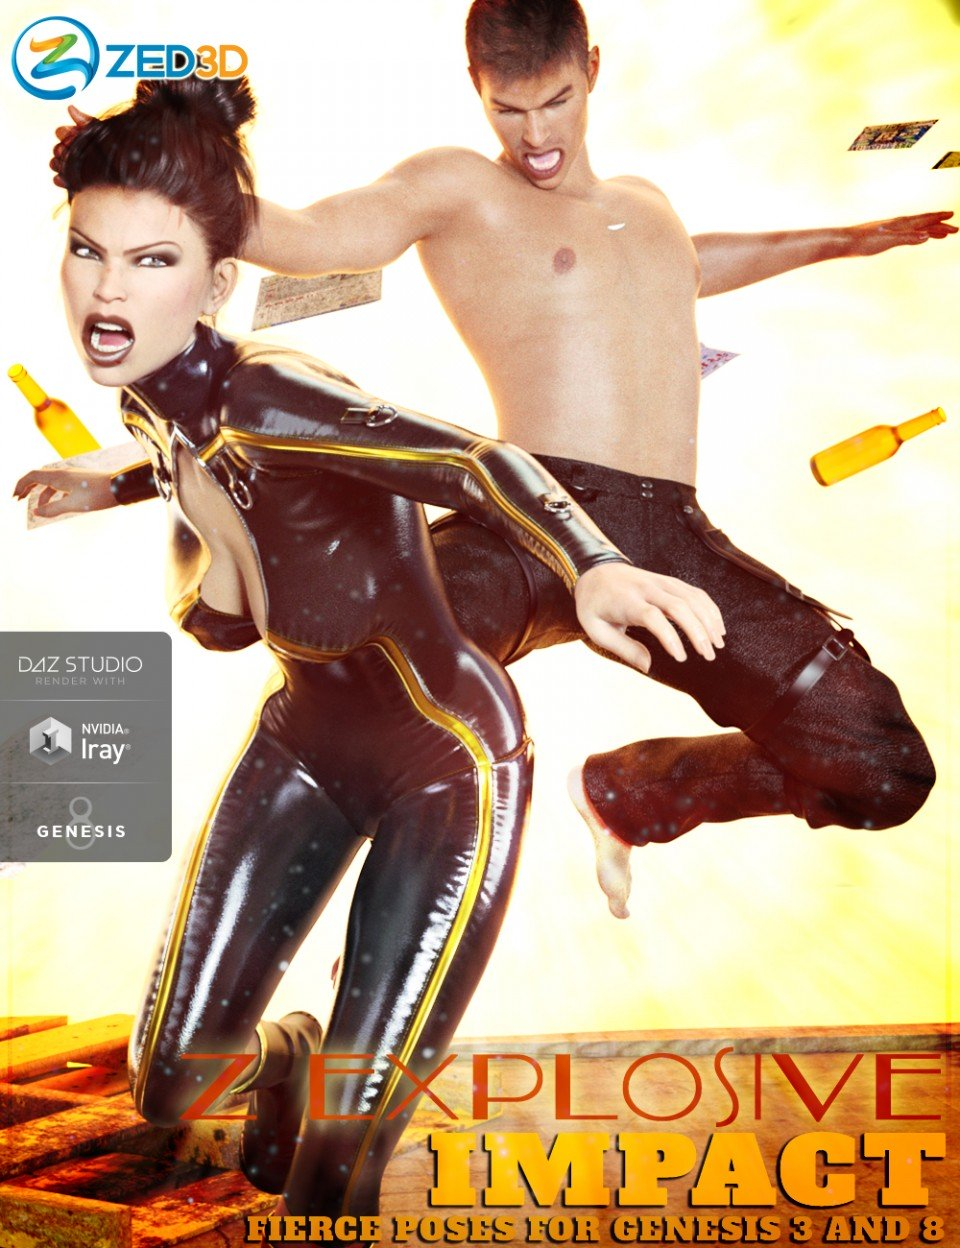 Z Explosive Impact Poses and Partials for Genesis 3 and 8_DAZ3D下载站